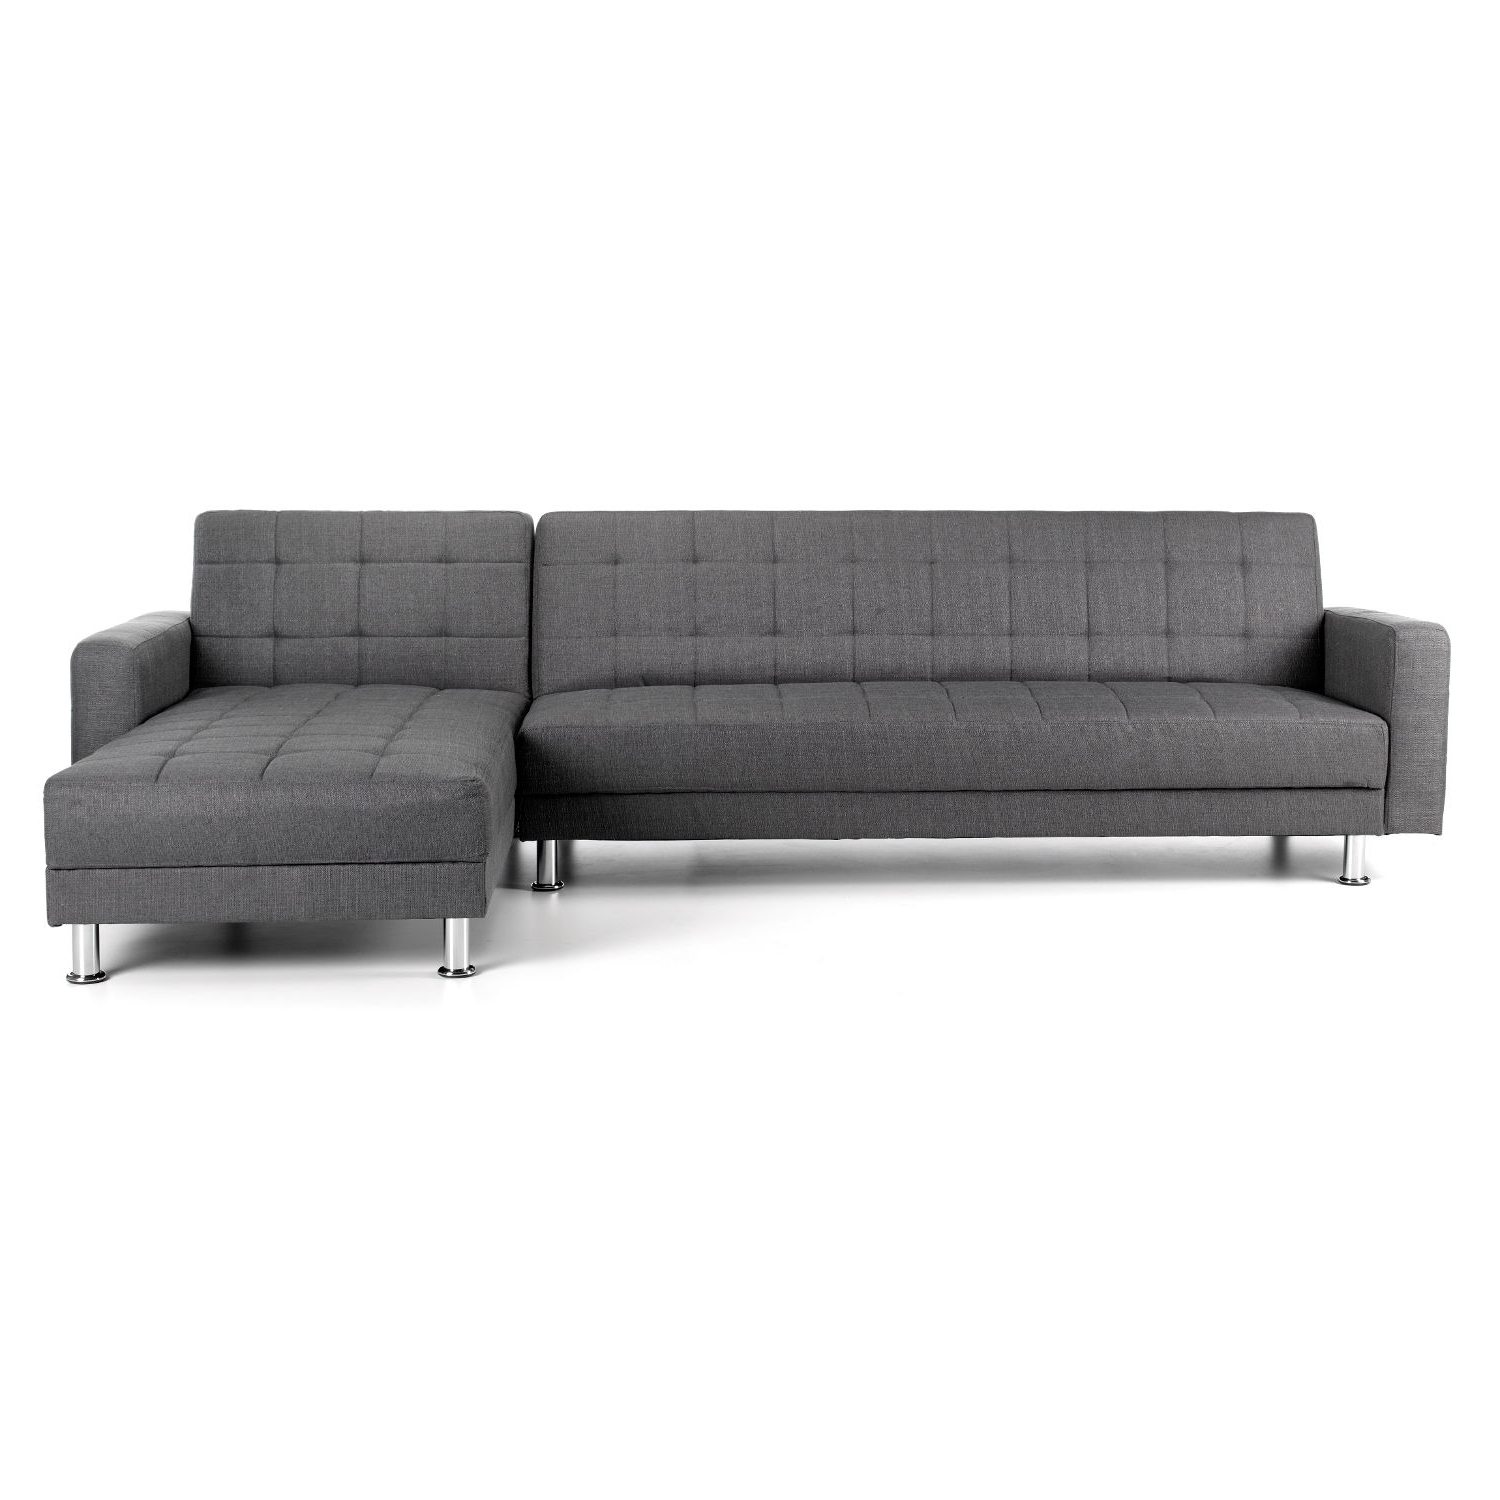 Chaise Sofa Beds Throughout Newest Spencer Fabric Corner Chaise Sofa Bed – Next Day Delivery Spencer (View 12 of 15)